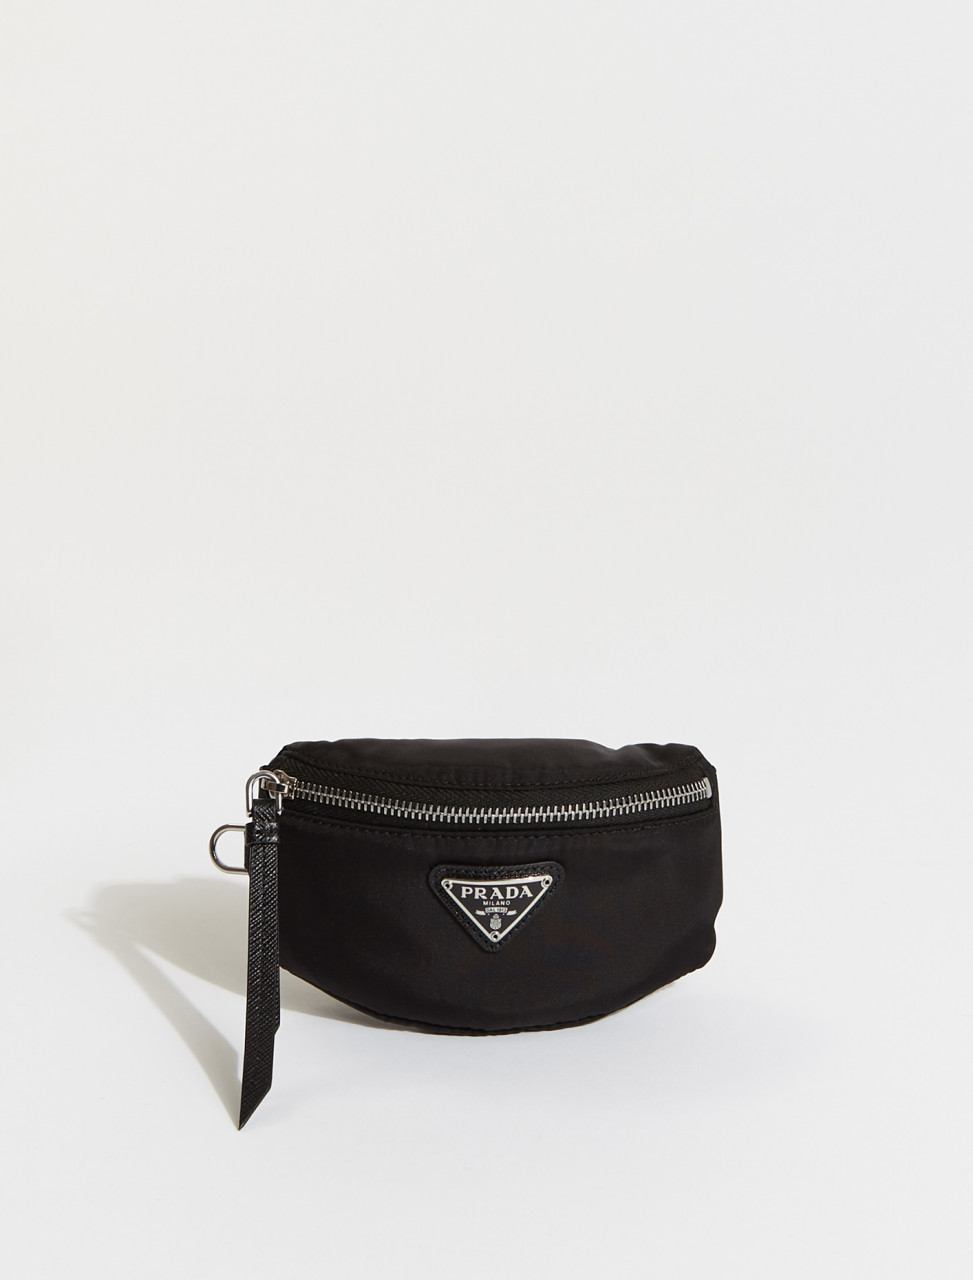 2TT116-F0002 PRADA Mini Nylon Pouch in Black